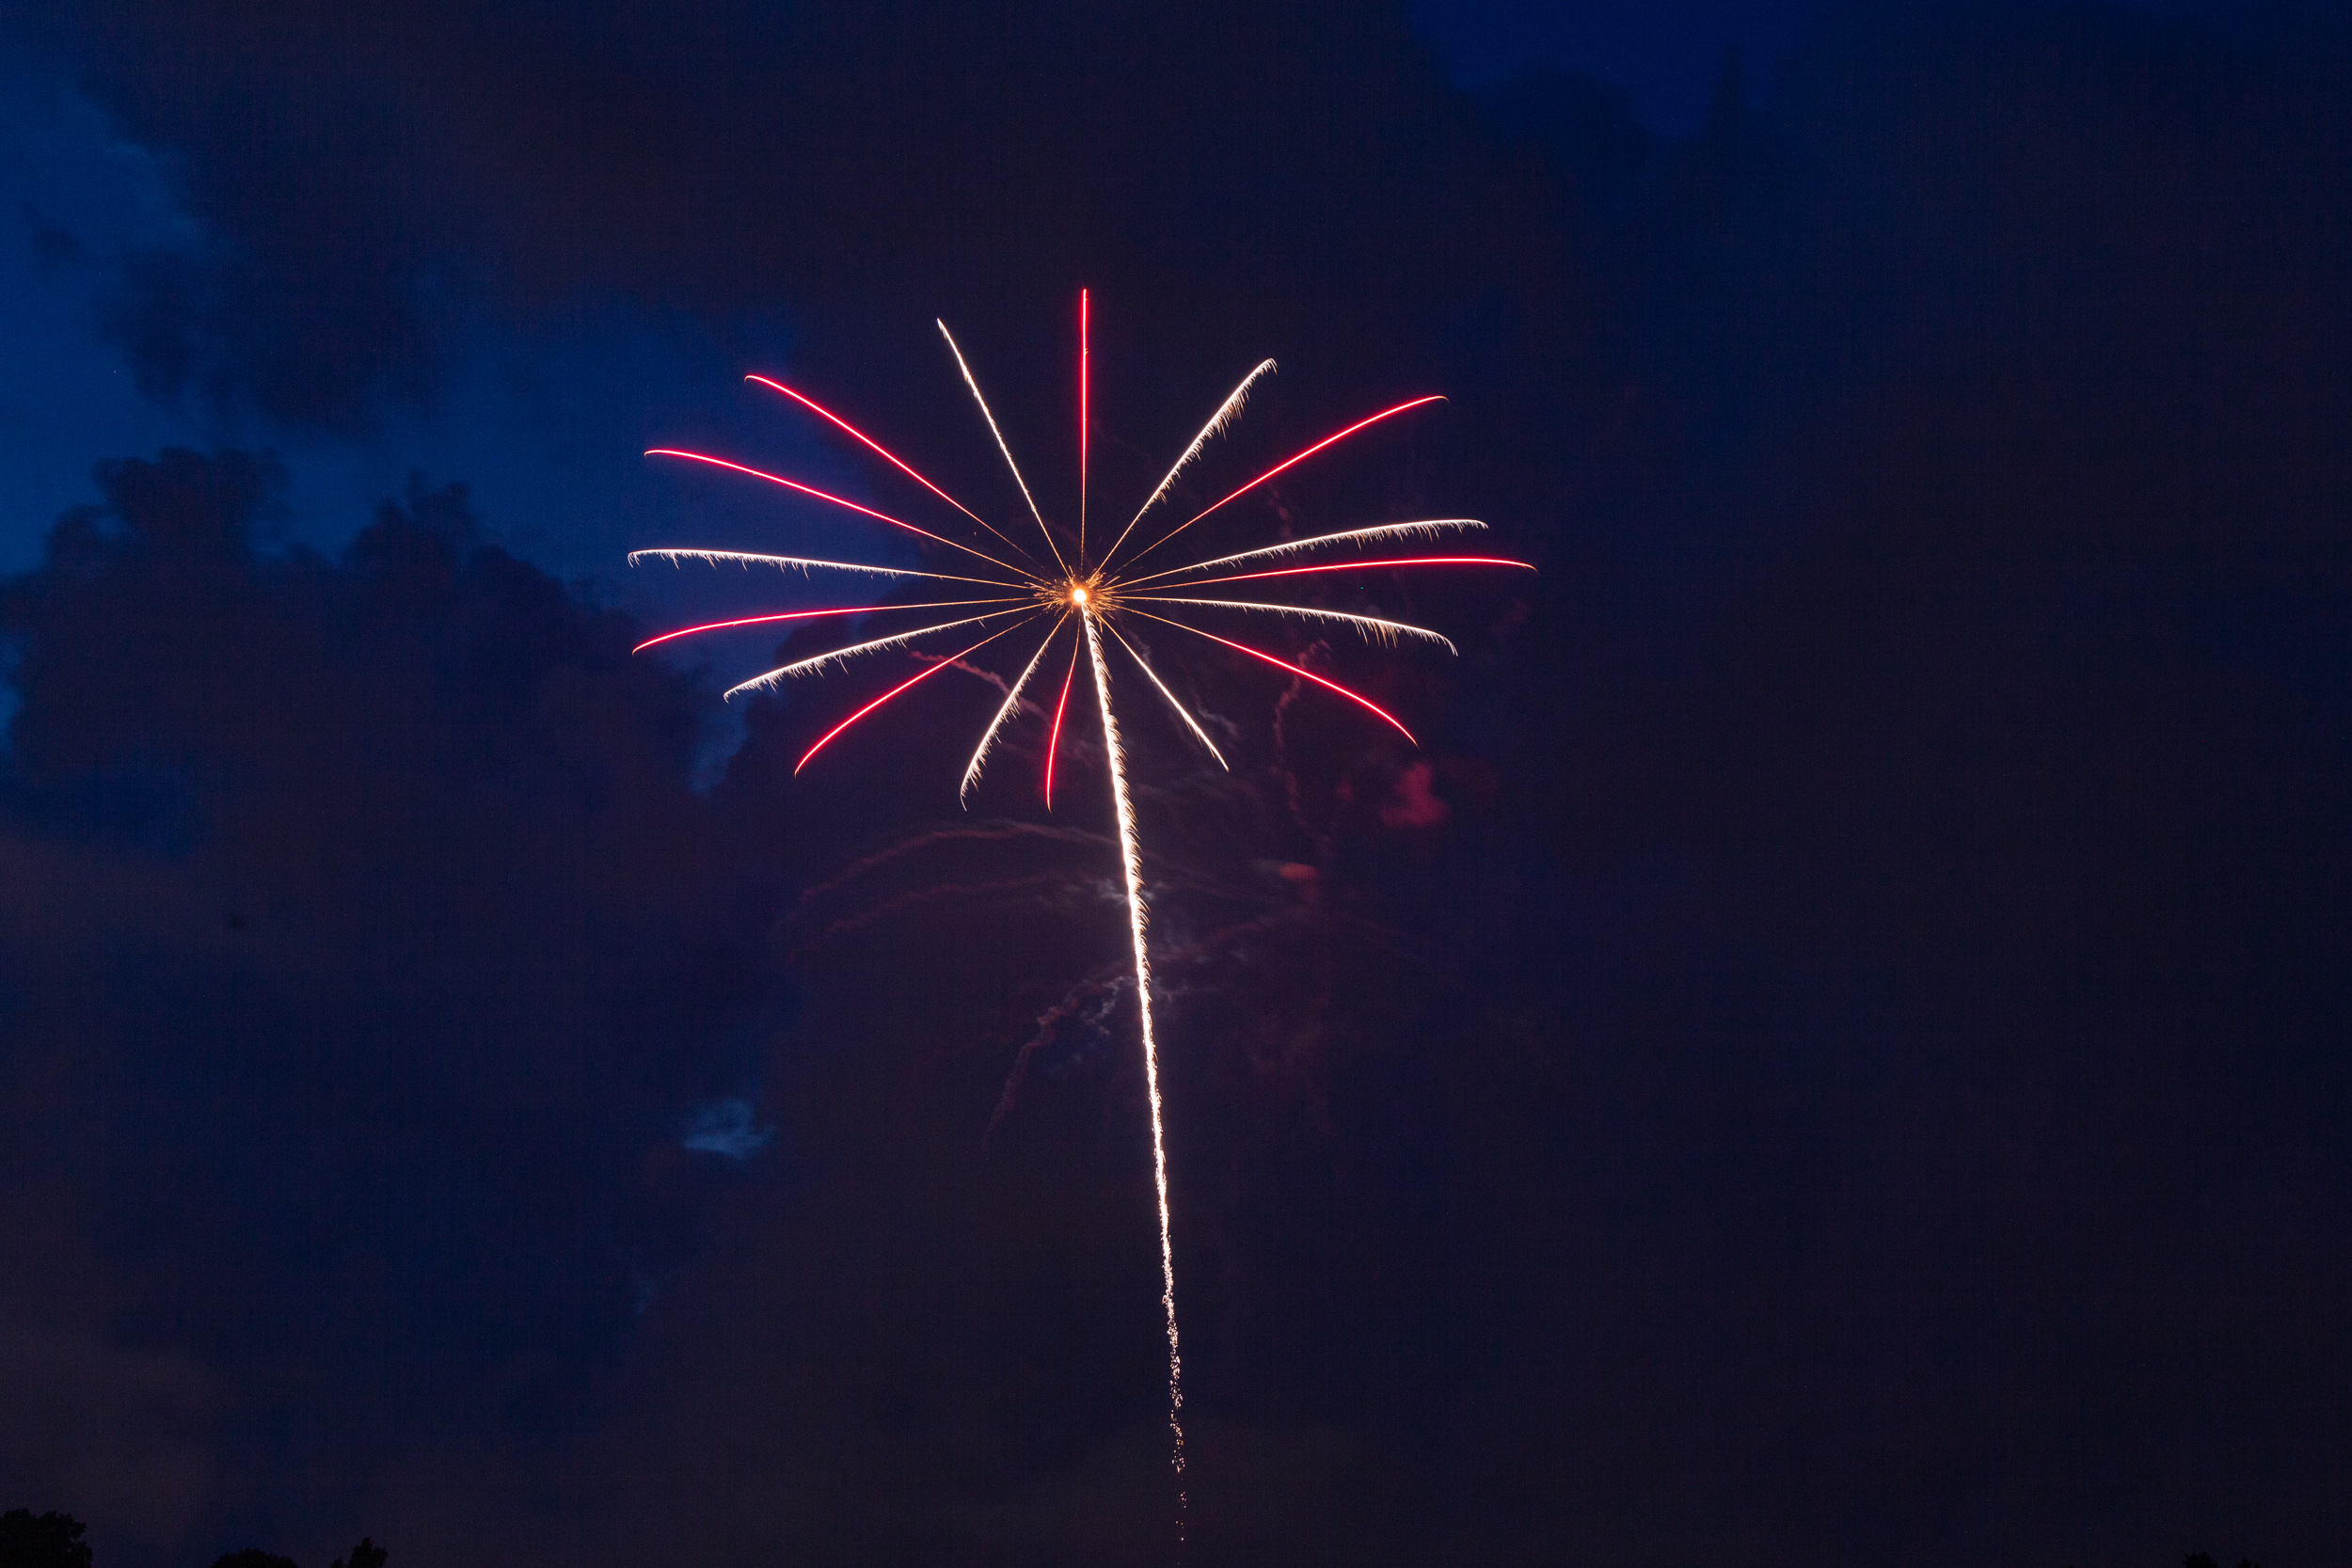 July 4th fireworks at Boone NC 2019-07-04-003.jpg